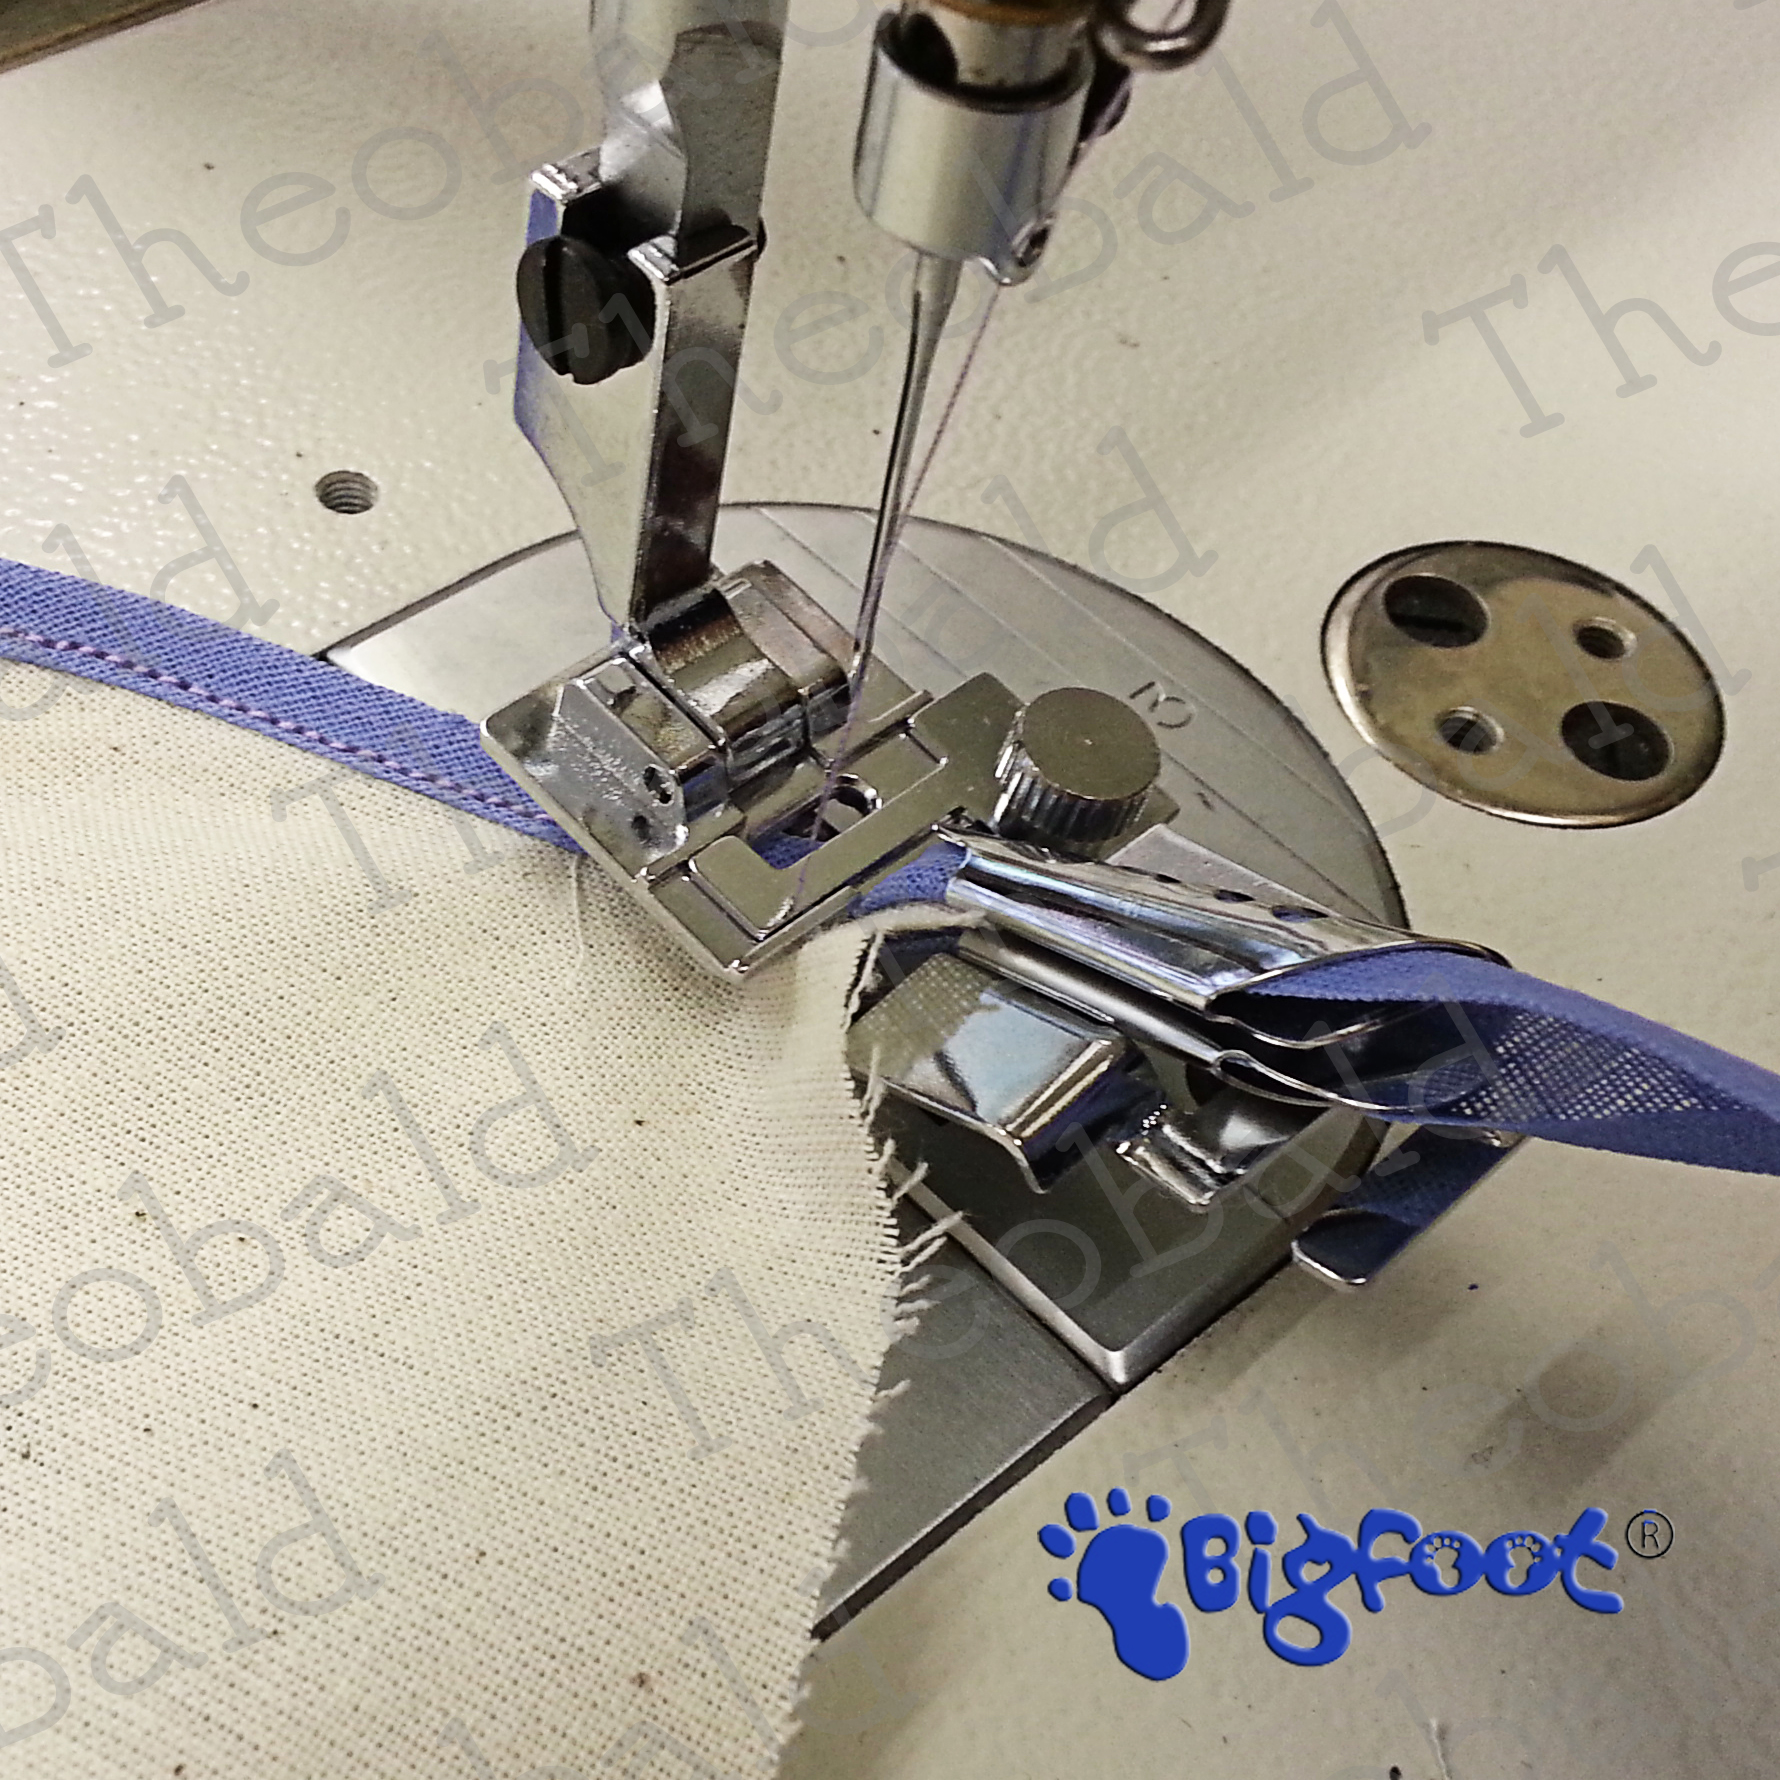 BIAS BINDING/BINDER FOOT INDUSTRIAL SEWING MACHINE FITS